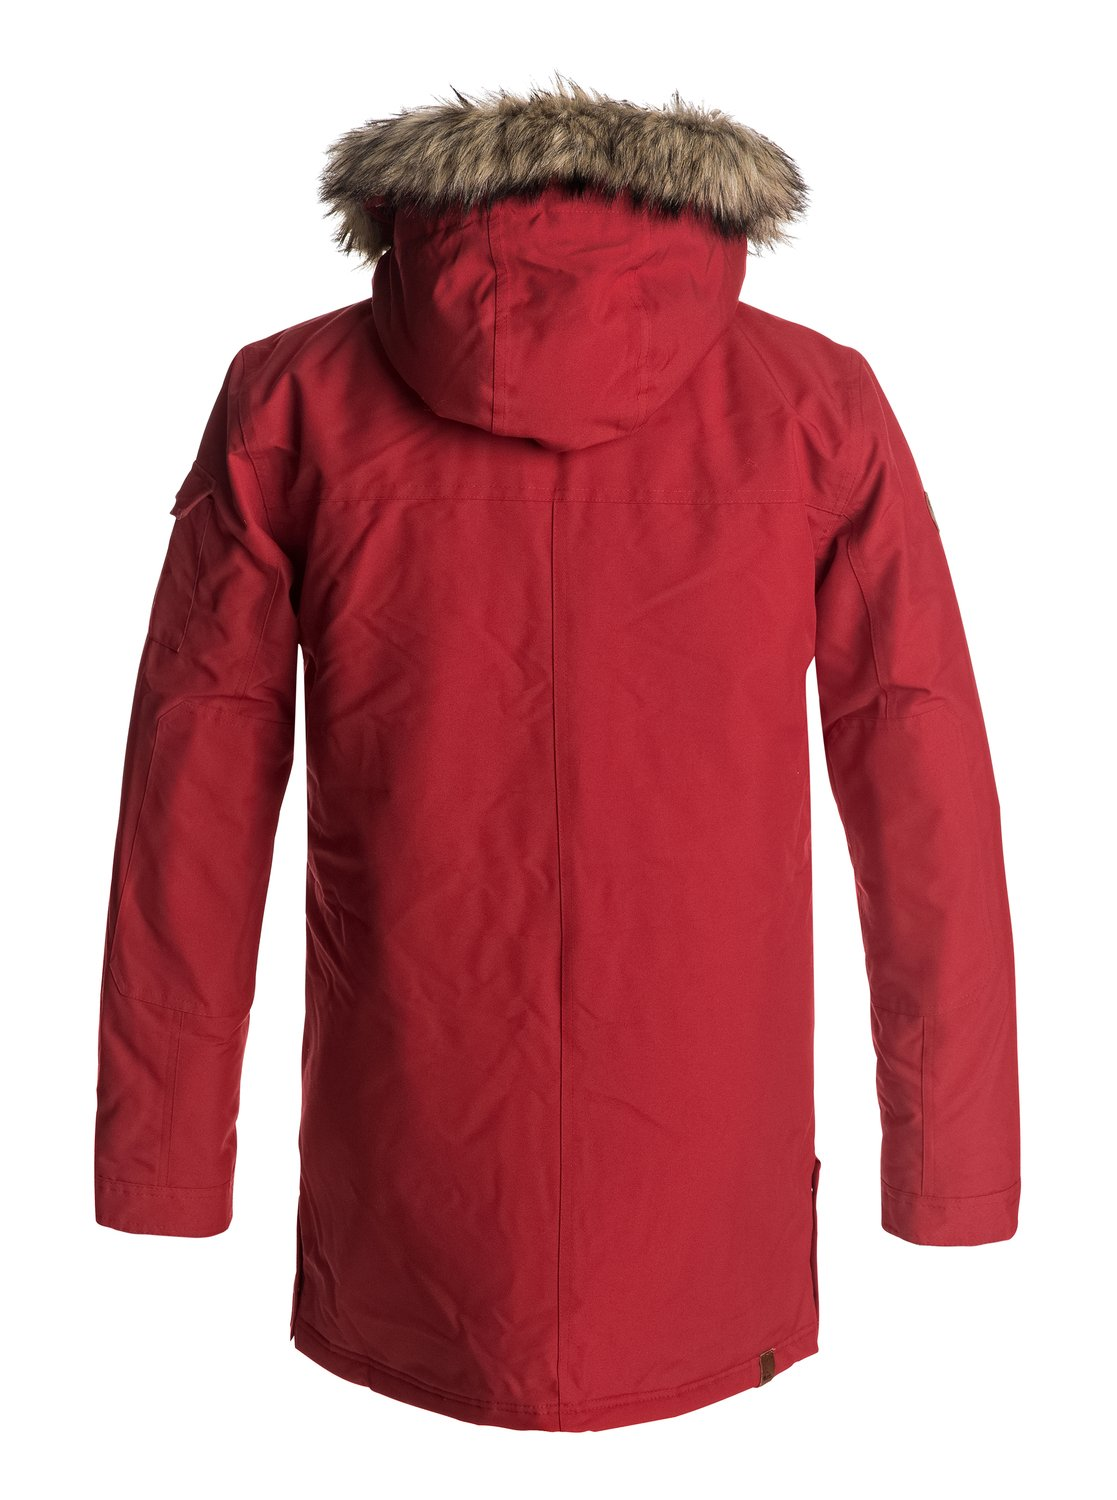 Quiksilver™ Ferris - Waterproof Parka Jacket - Waterproof Parka ...